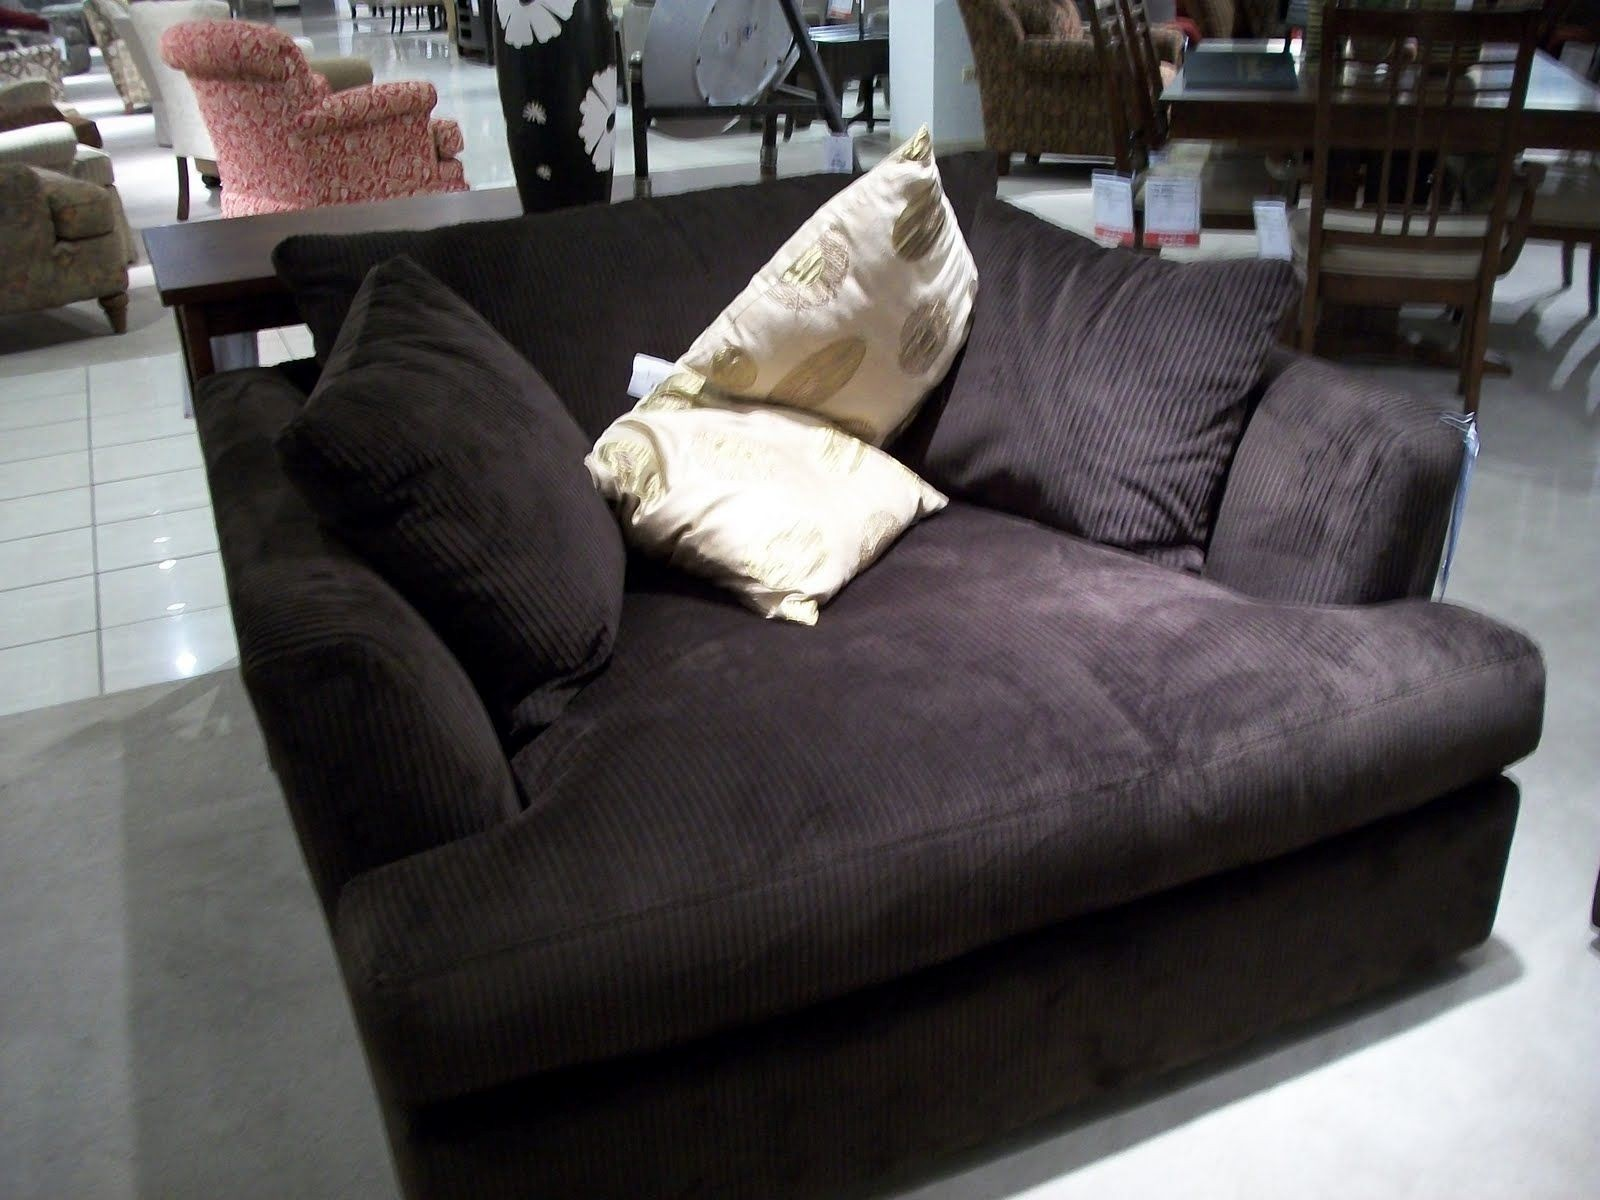 Oversized sofa Chair Stunning Big Fy Oversized Armchair where You Can Snuggle Up with A Good Construction